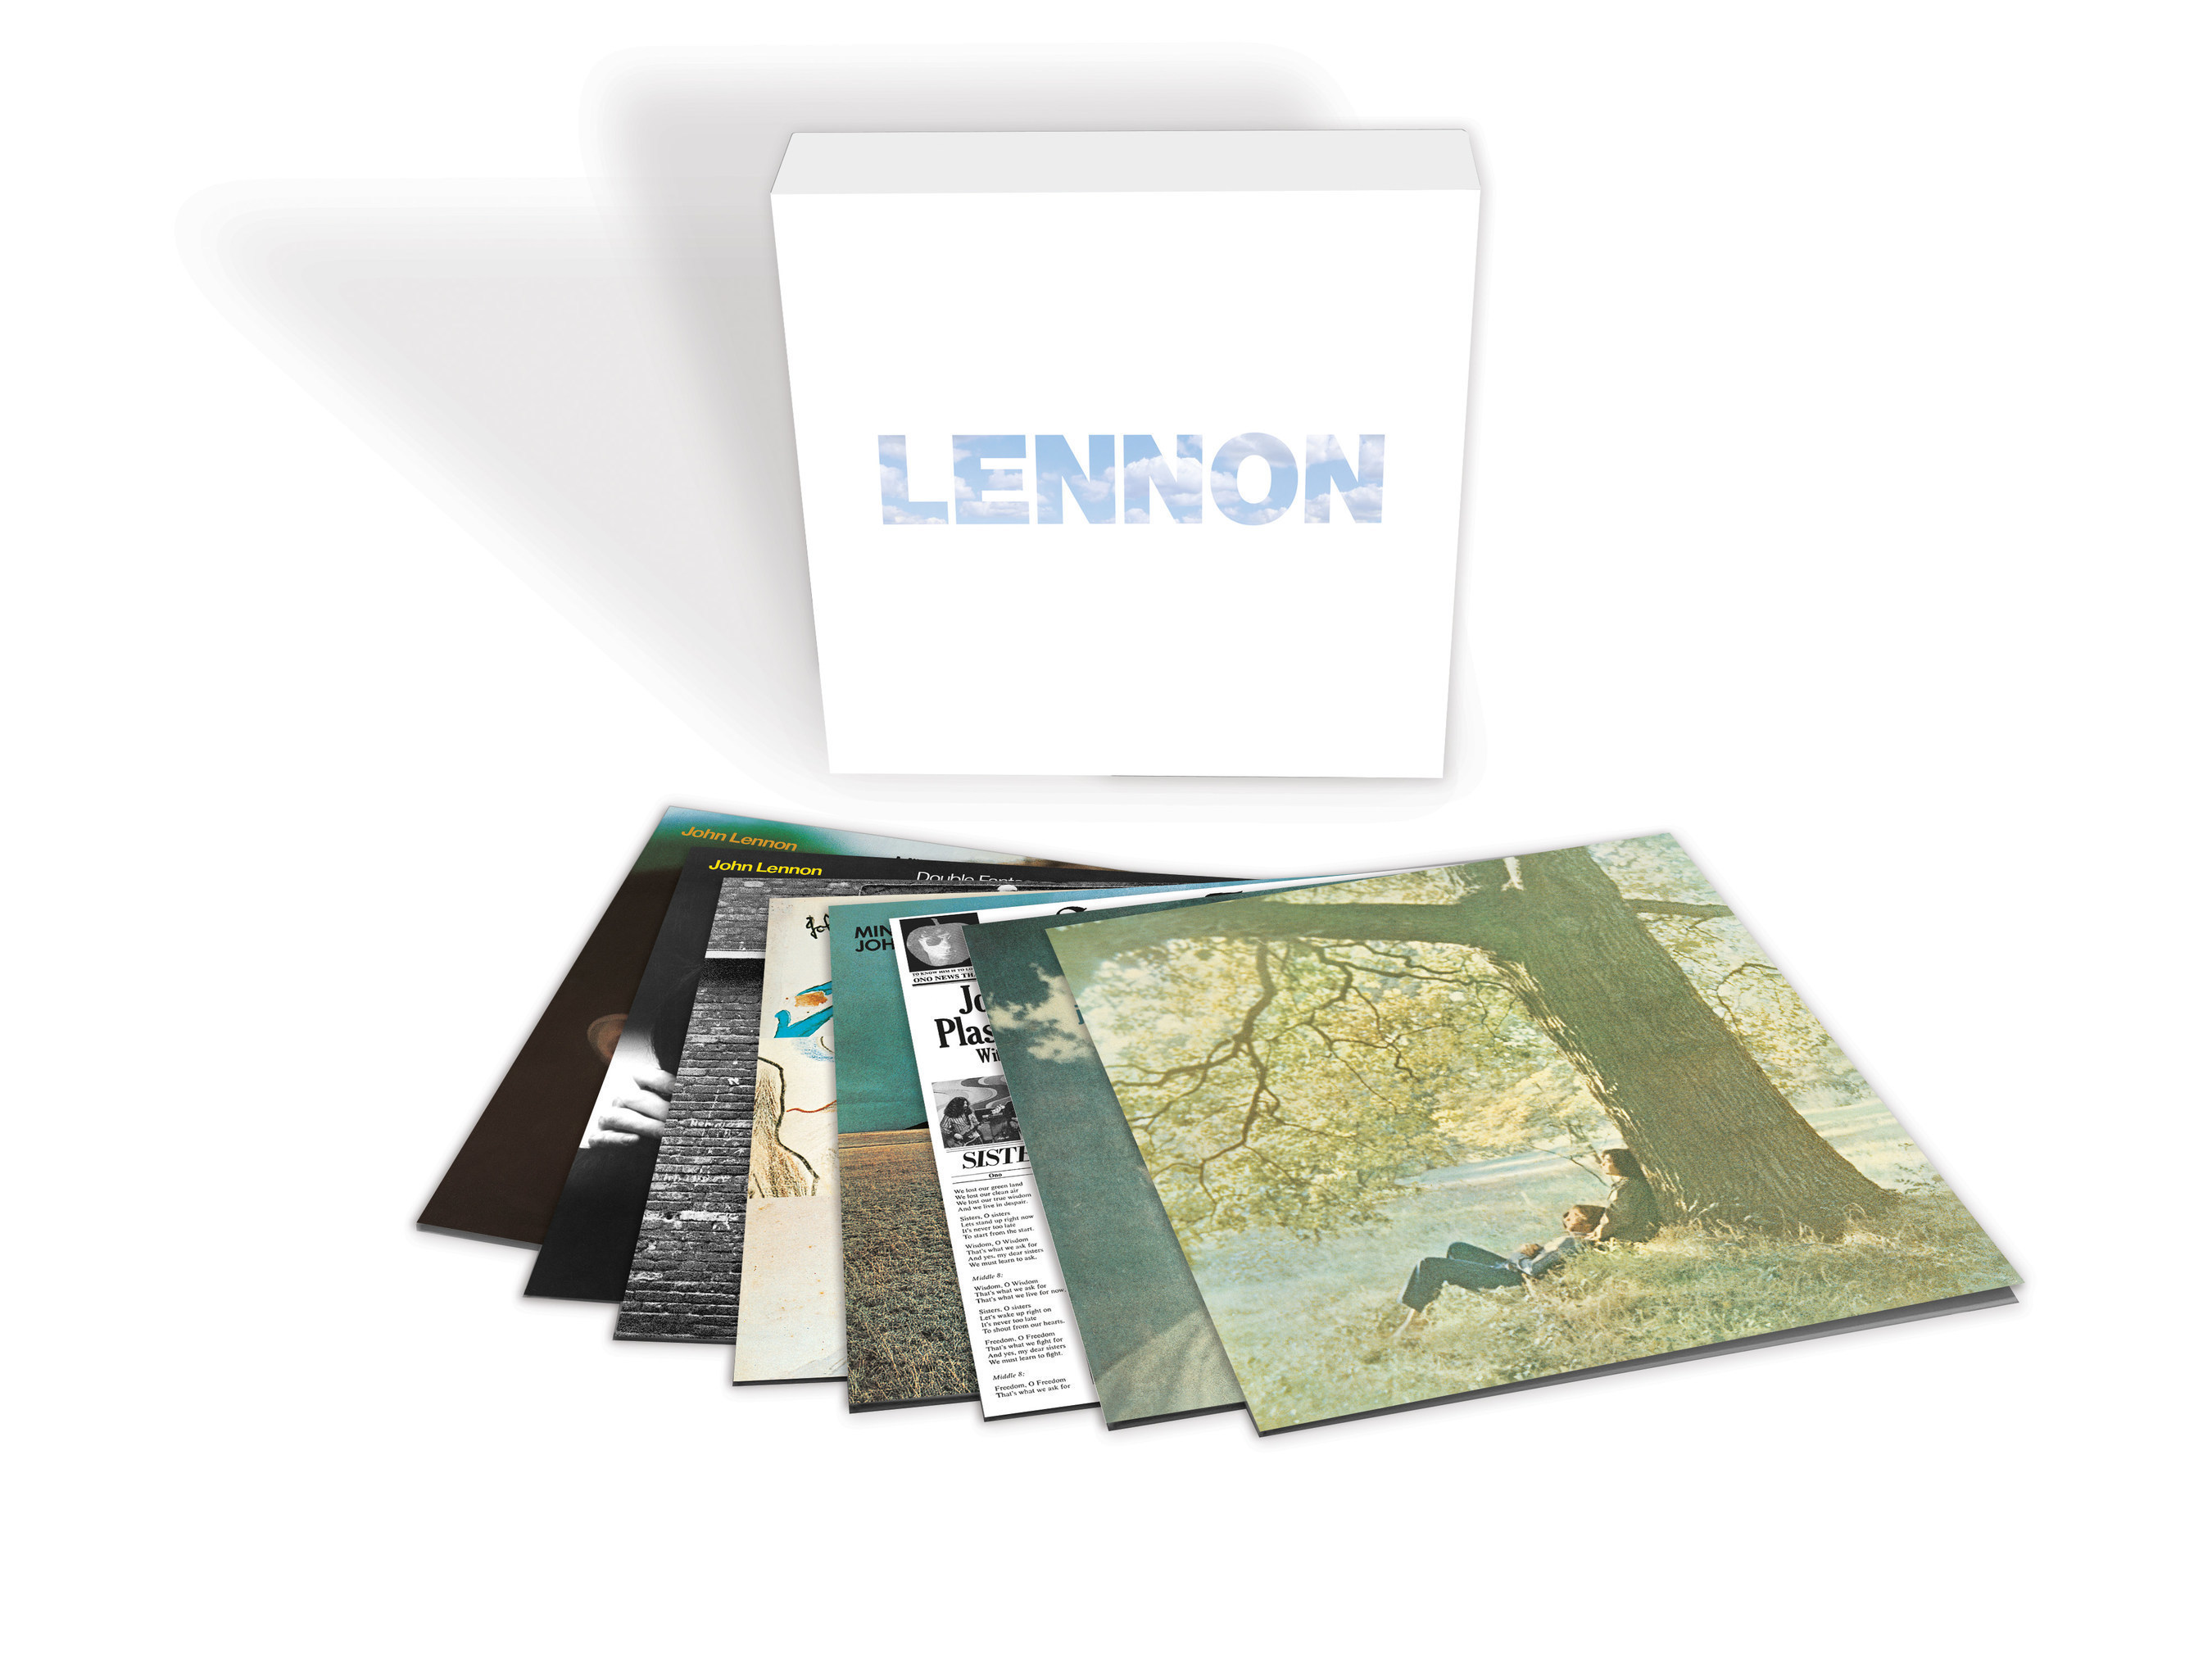 John Lennon's eight solo studio albums, remastered from their original analogue masters, have been newly cut to vinyl from 96k digital files for 'Lennon,' a new 9LP boxed collection on heavyweight, 180-gram vinyl with faithfully replicated original album art. To be released June 9 by Capitol/UMe, the collection's albums are all out-of-print worldwide on vinyl, with the exception of previous LP remasters of 'Imagine' and 'Rock 'n' Roll' which are in print in the United States.